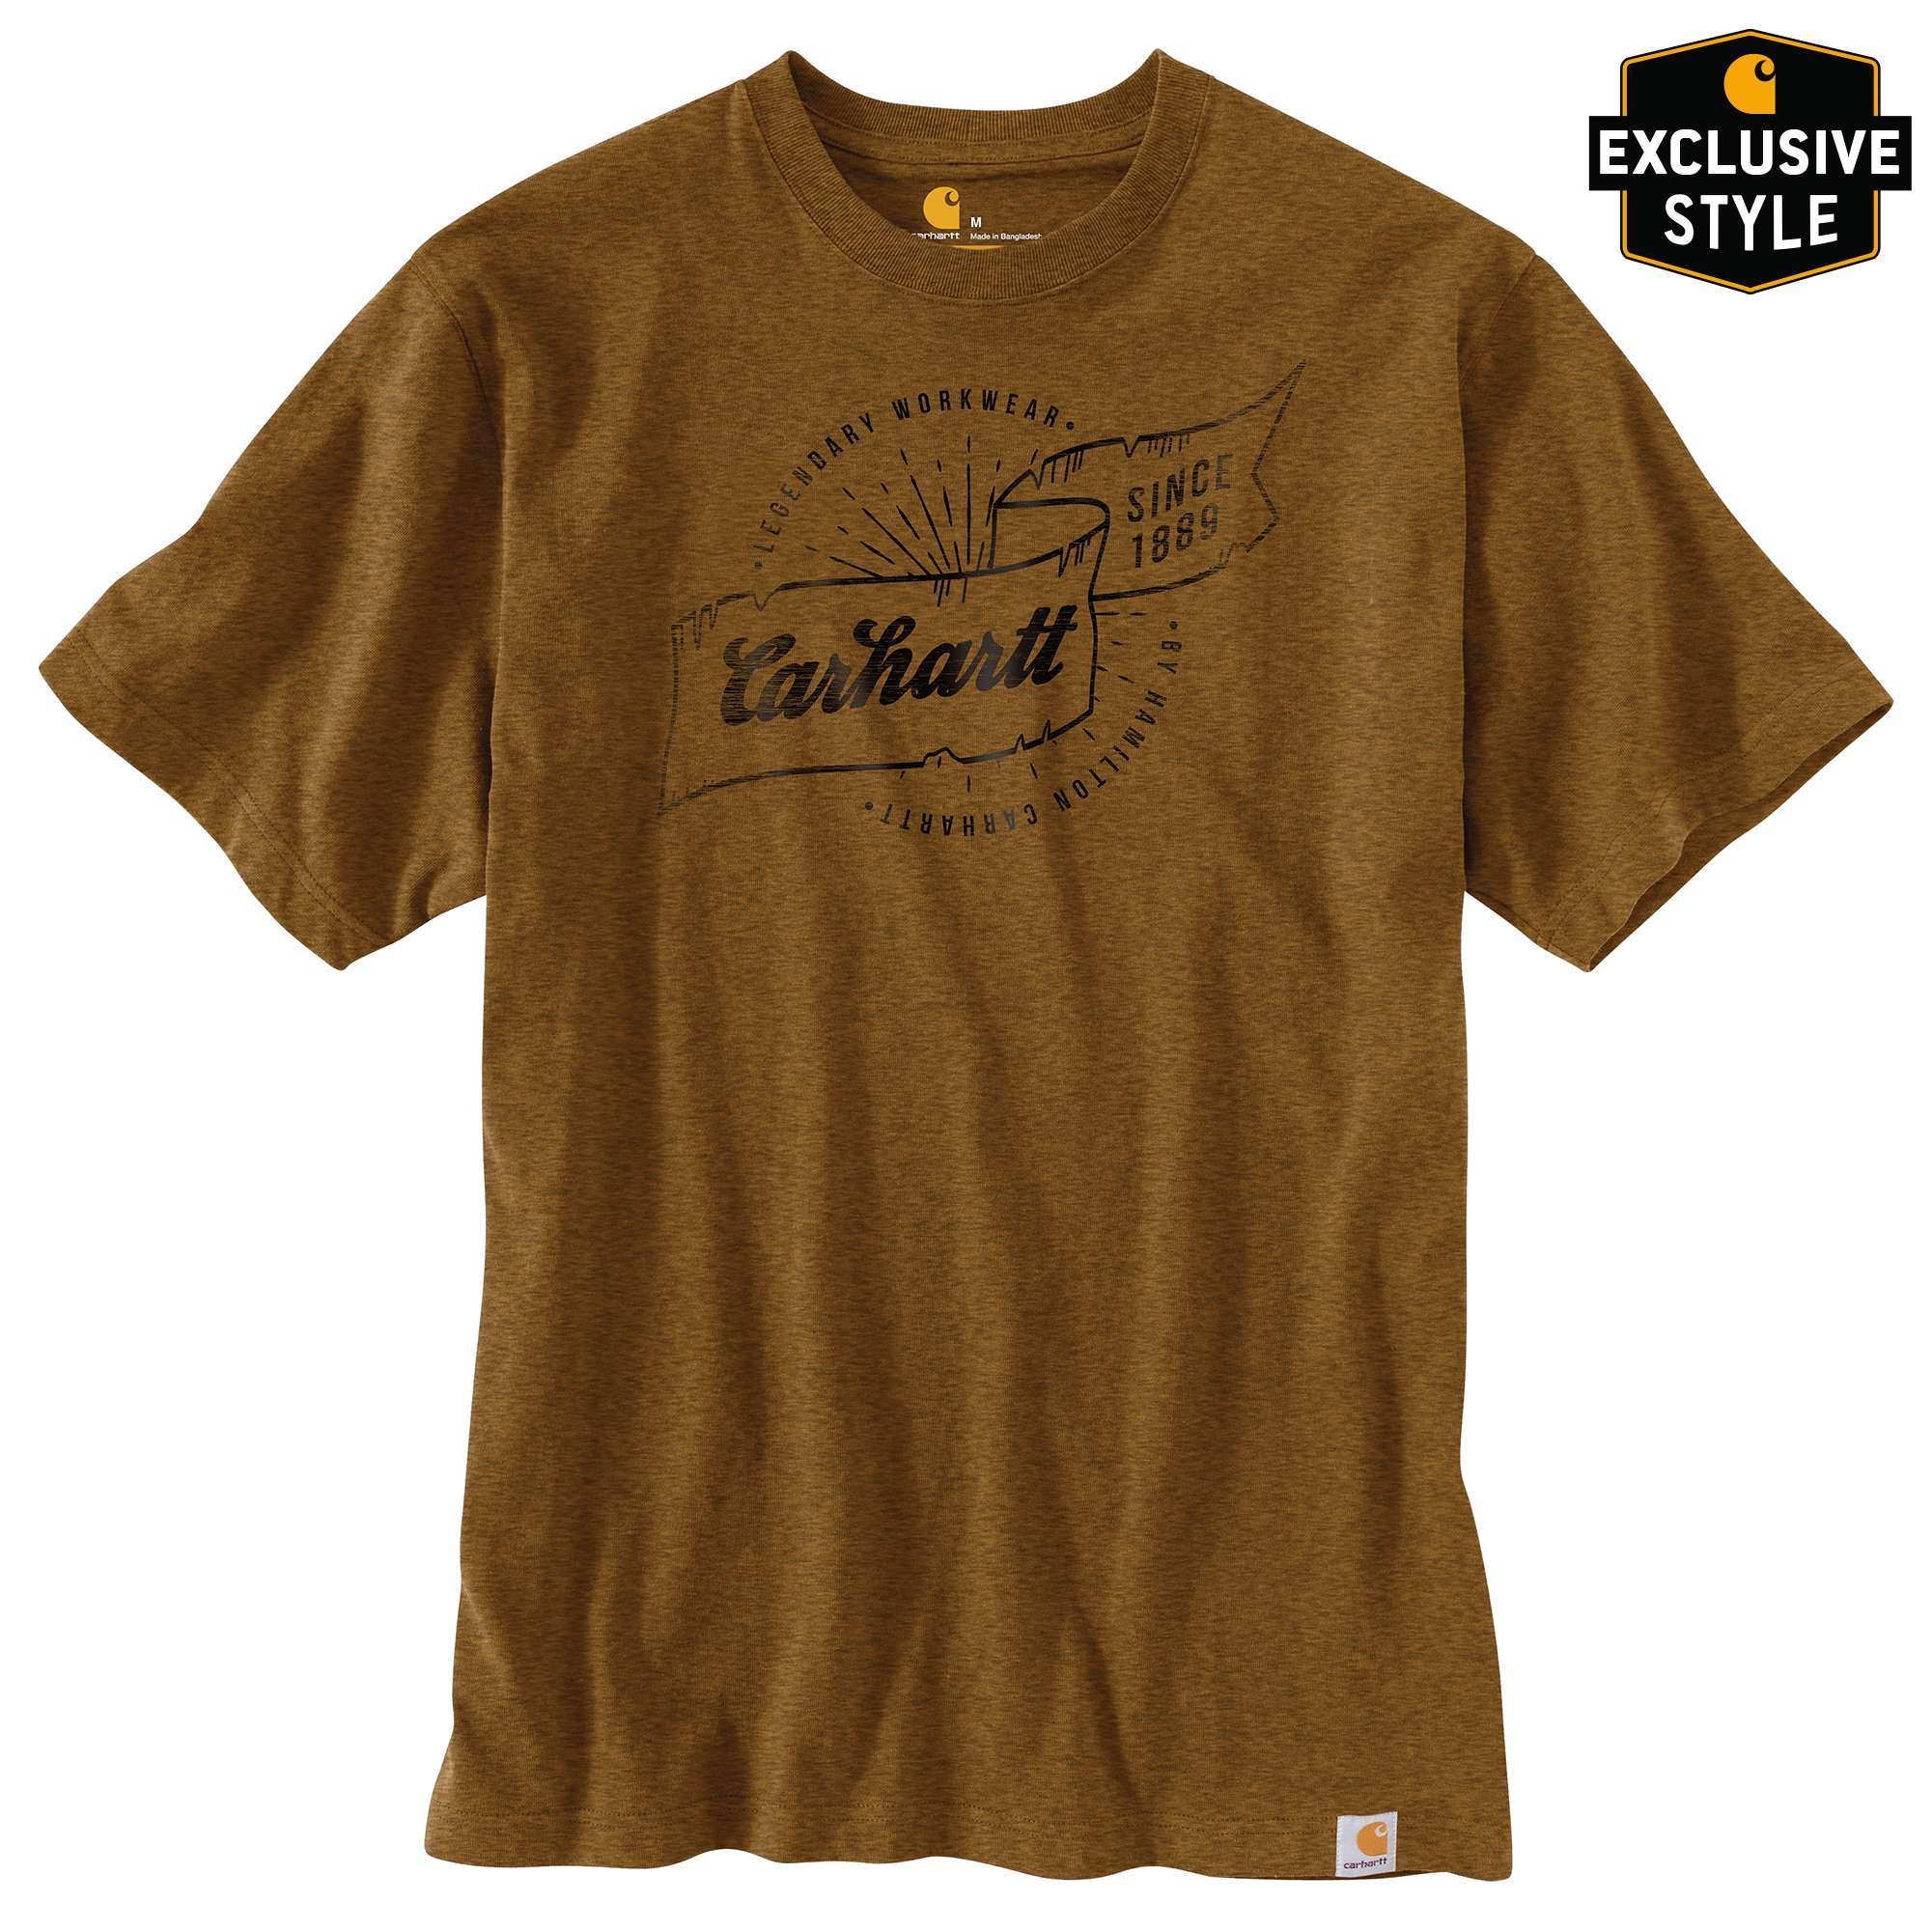 Relaxed Fit Heavyweight Short-Sleeve Hamilton Graphic T-Shirt